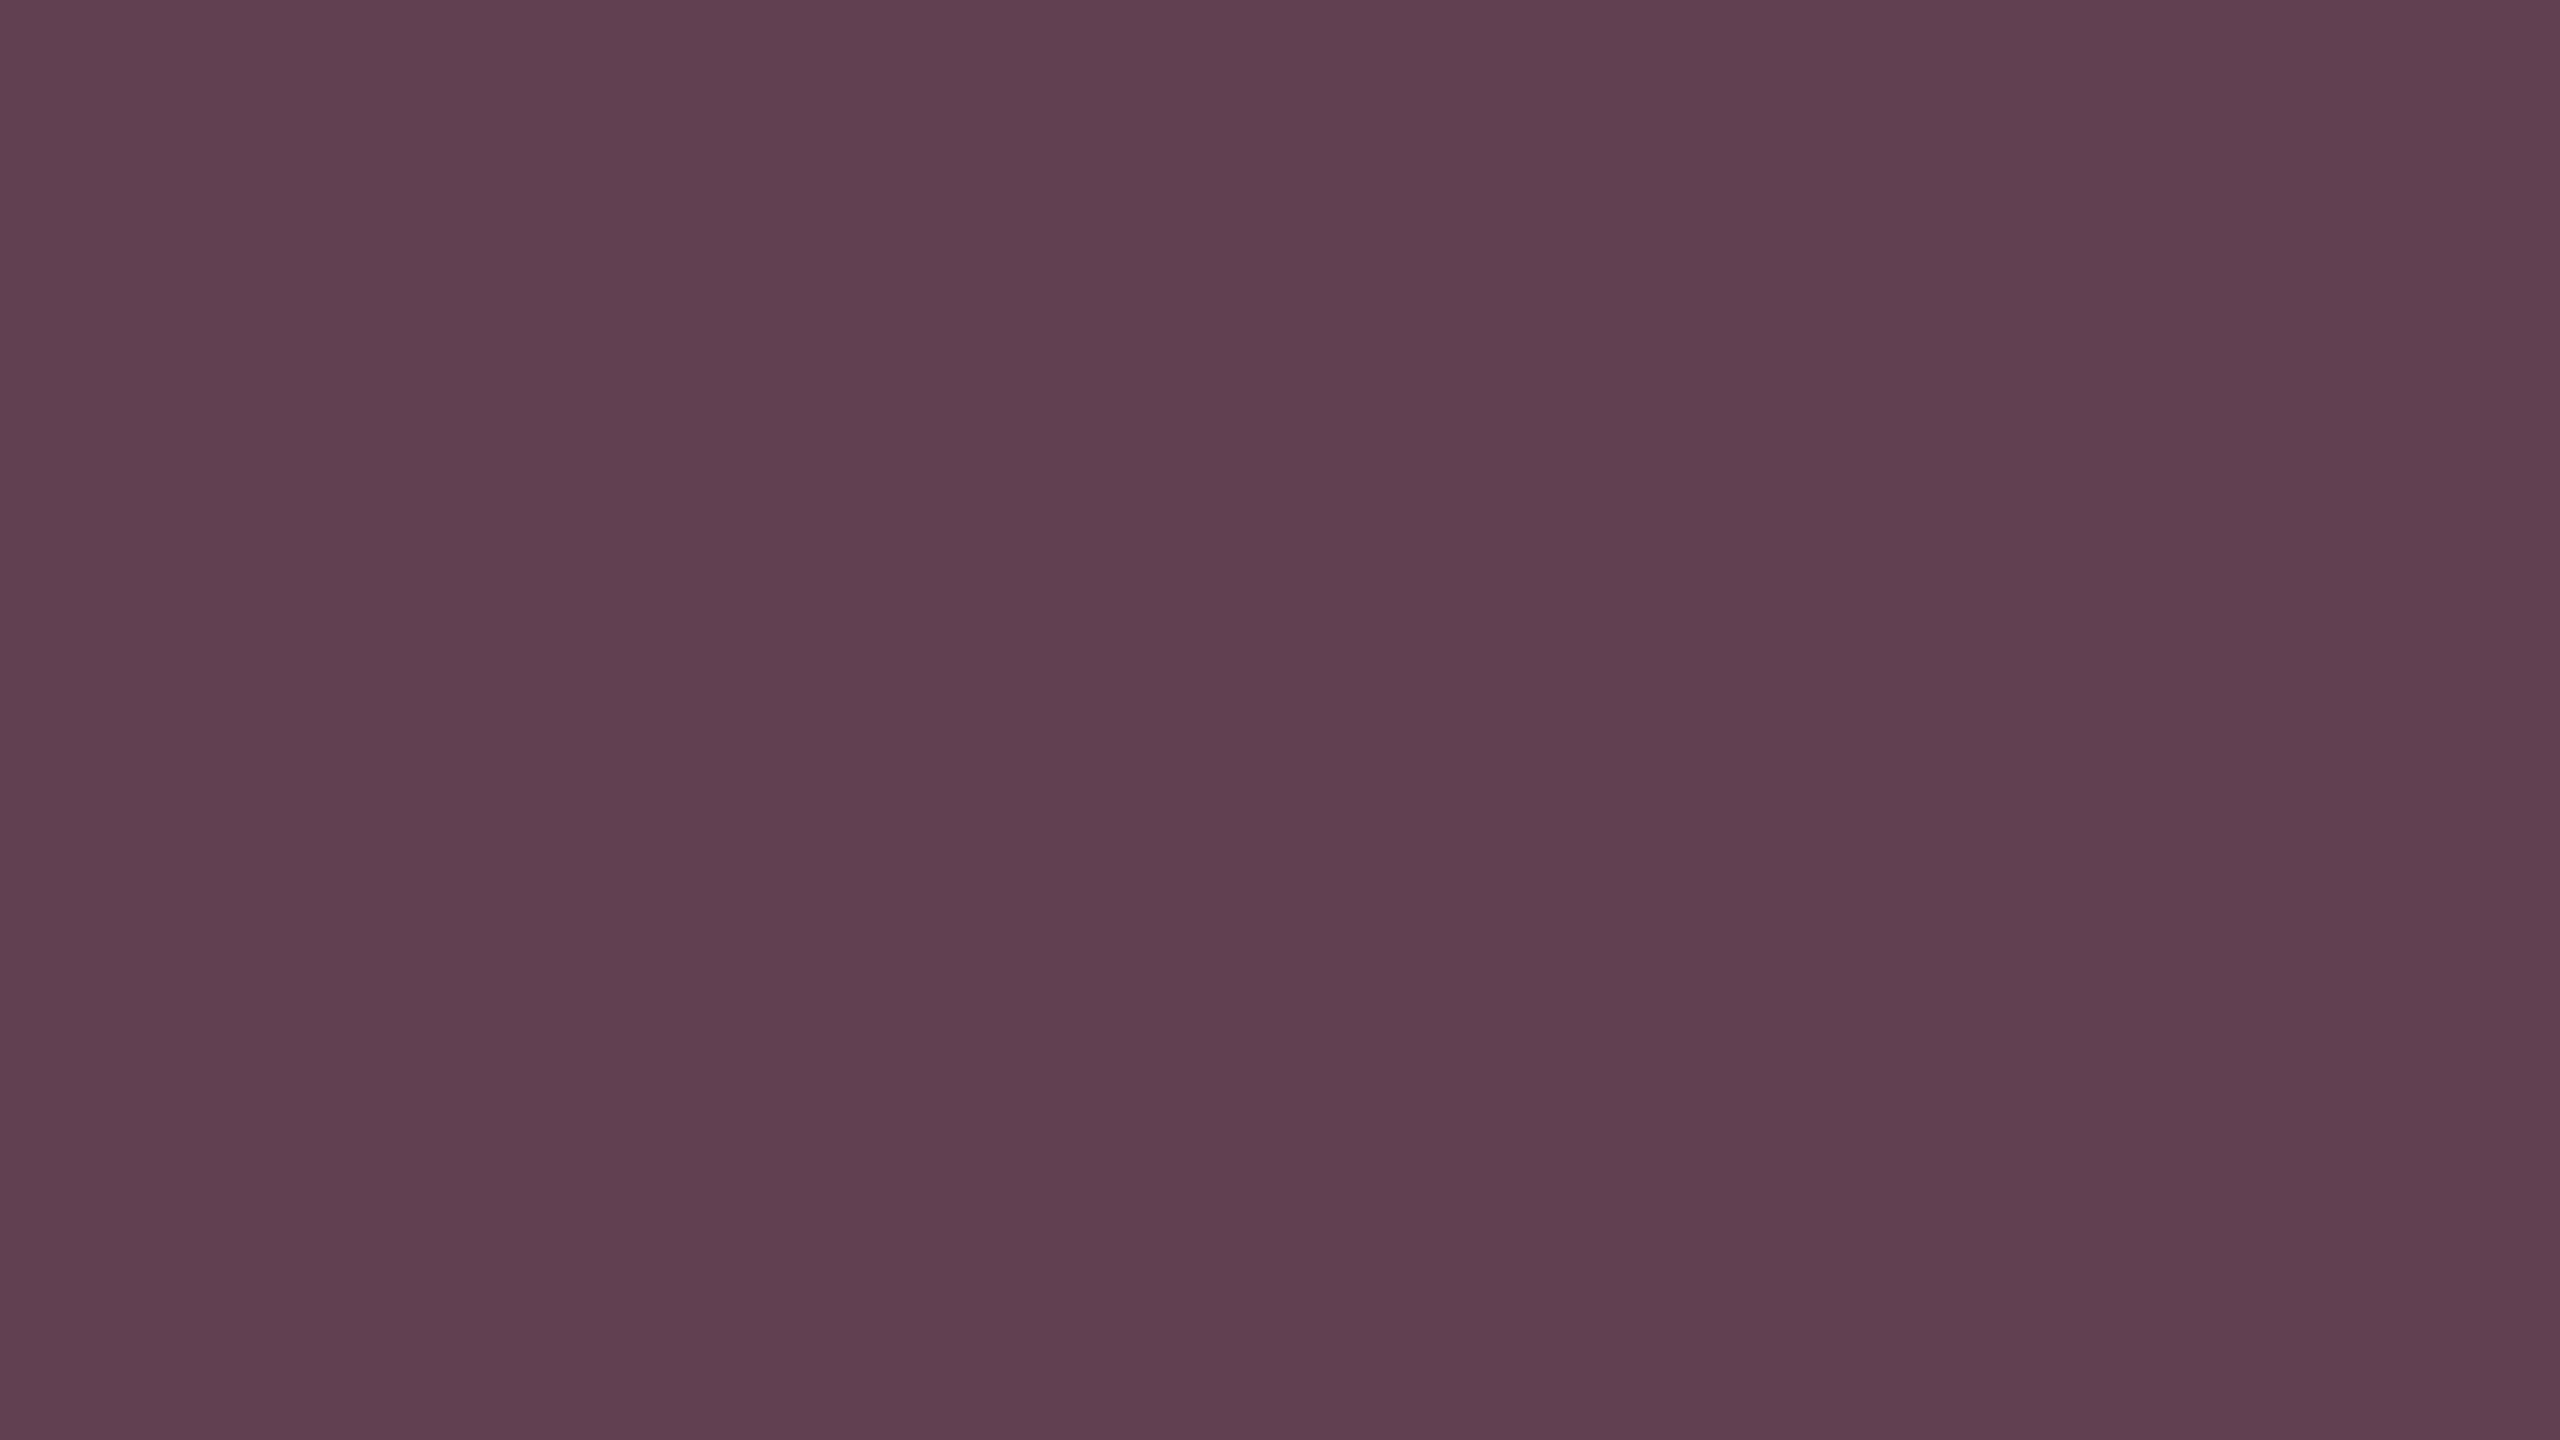 2560x1440 Eggplant Solid Color Background